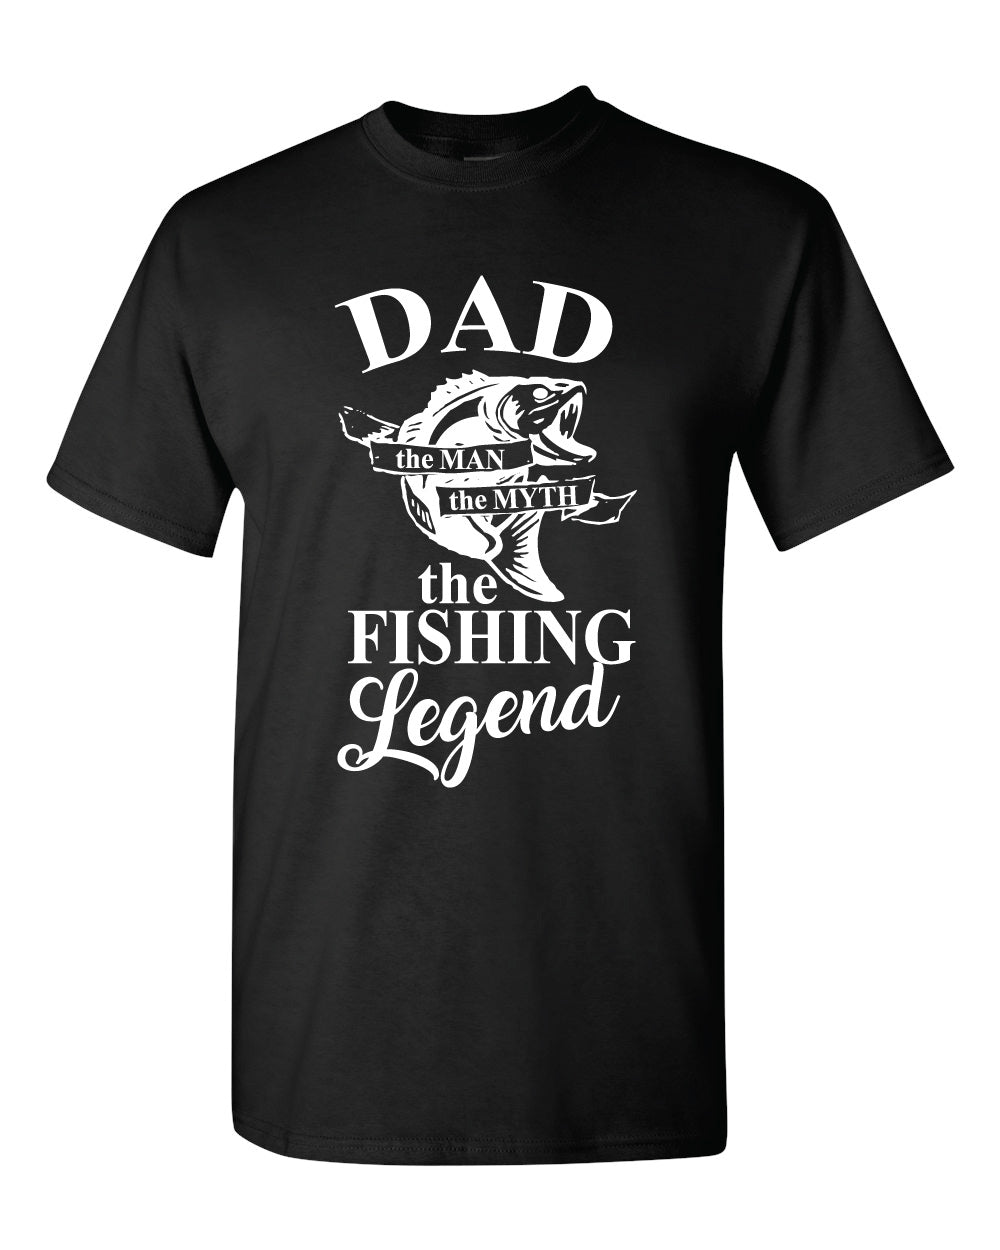 Fishing Dad Legend - Black T-Shirt Black